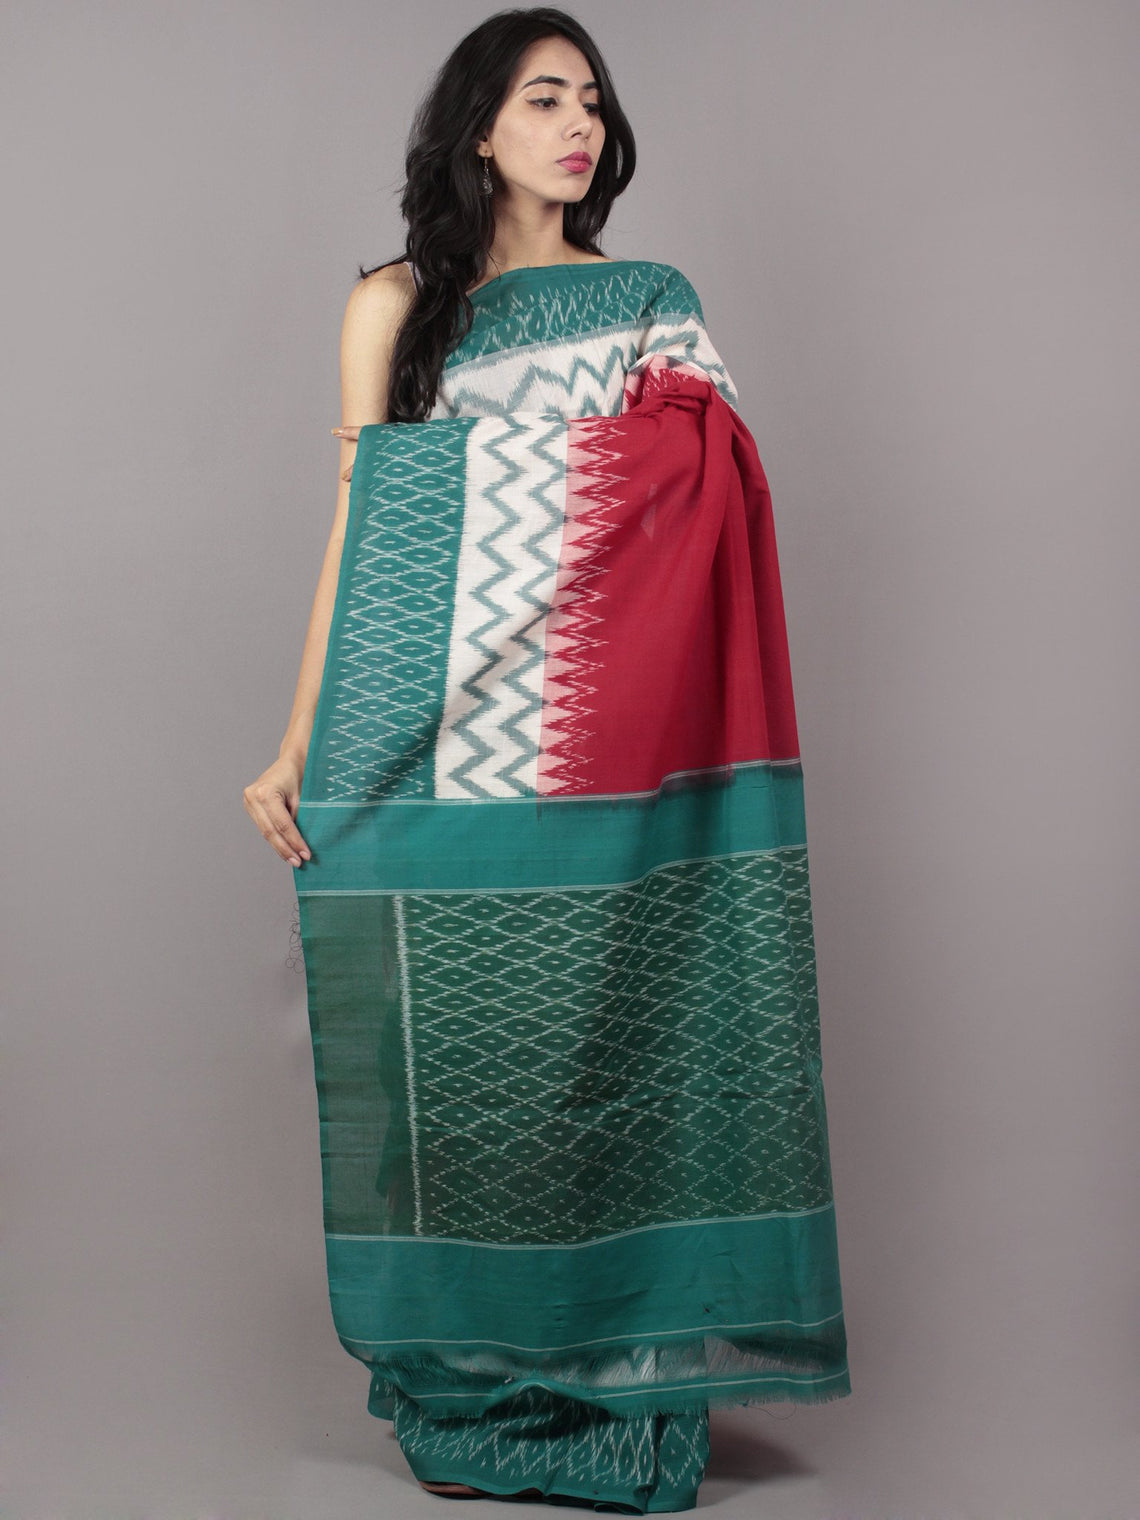 Red Ivory Teal Green Ikat Handwoven Pochampally Mercerized Cotton Saree - S031701651